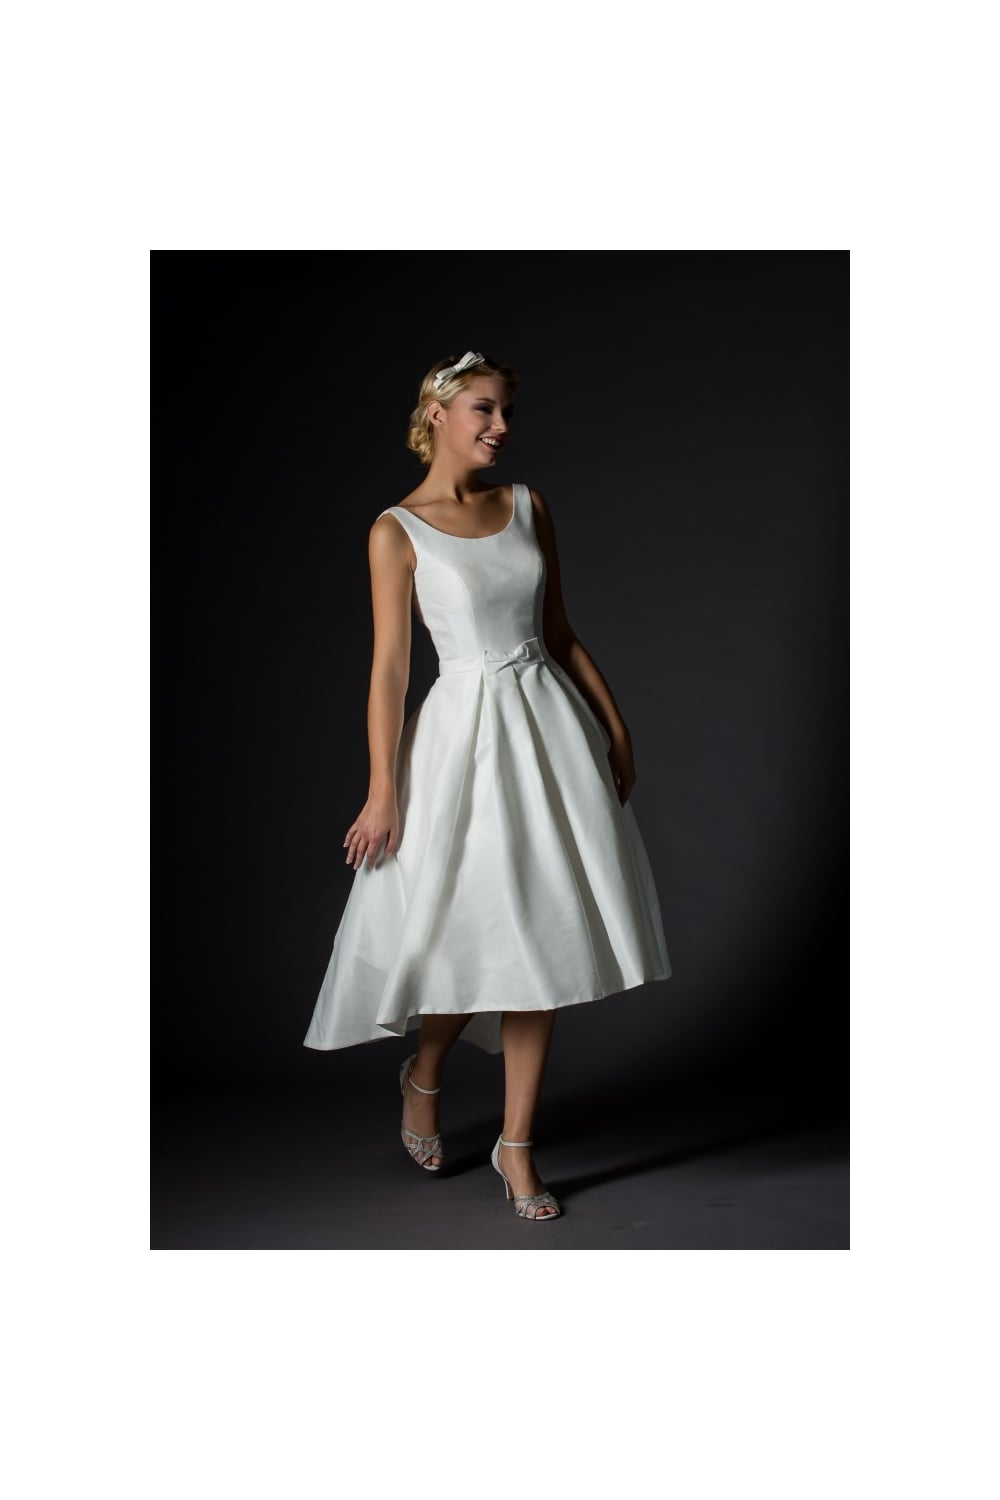 1039 Jessica Rita Mae Tea Length Short Vintage 50s Wedding Dress